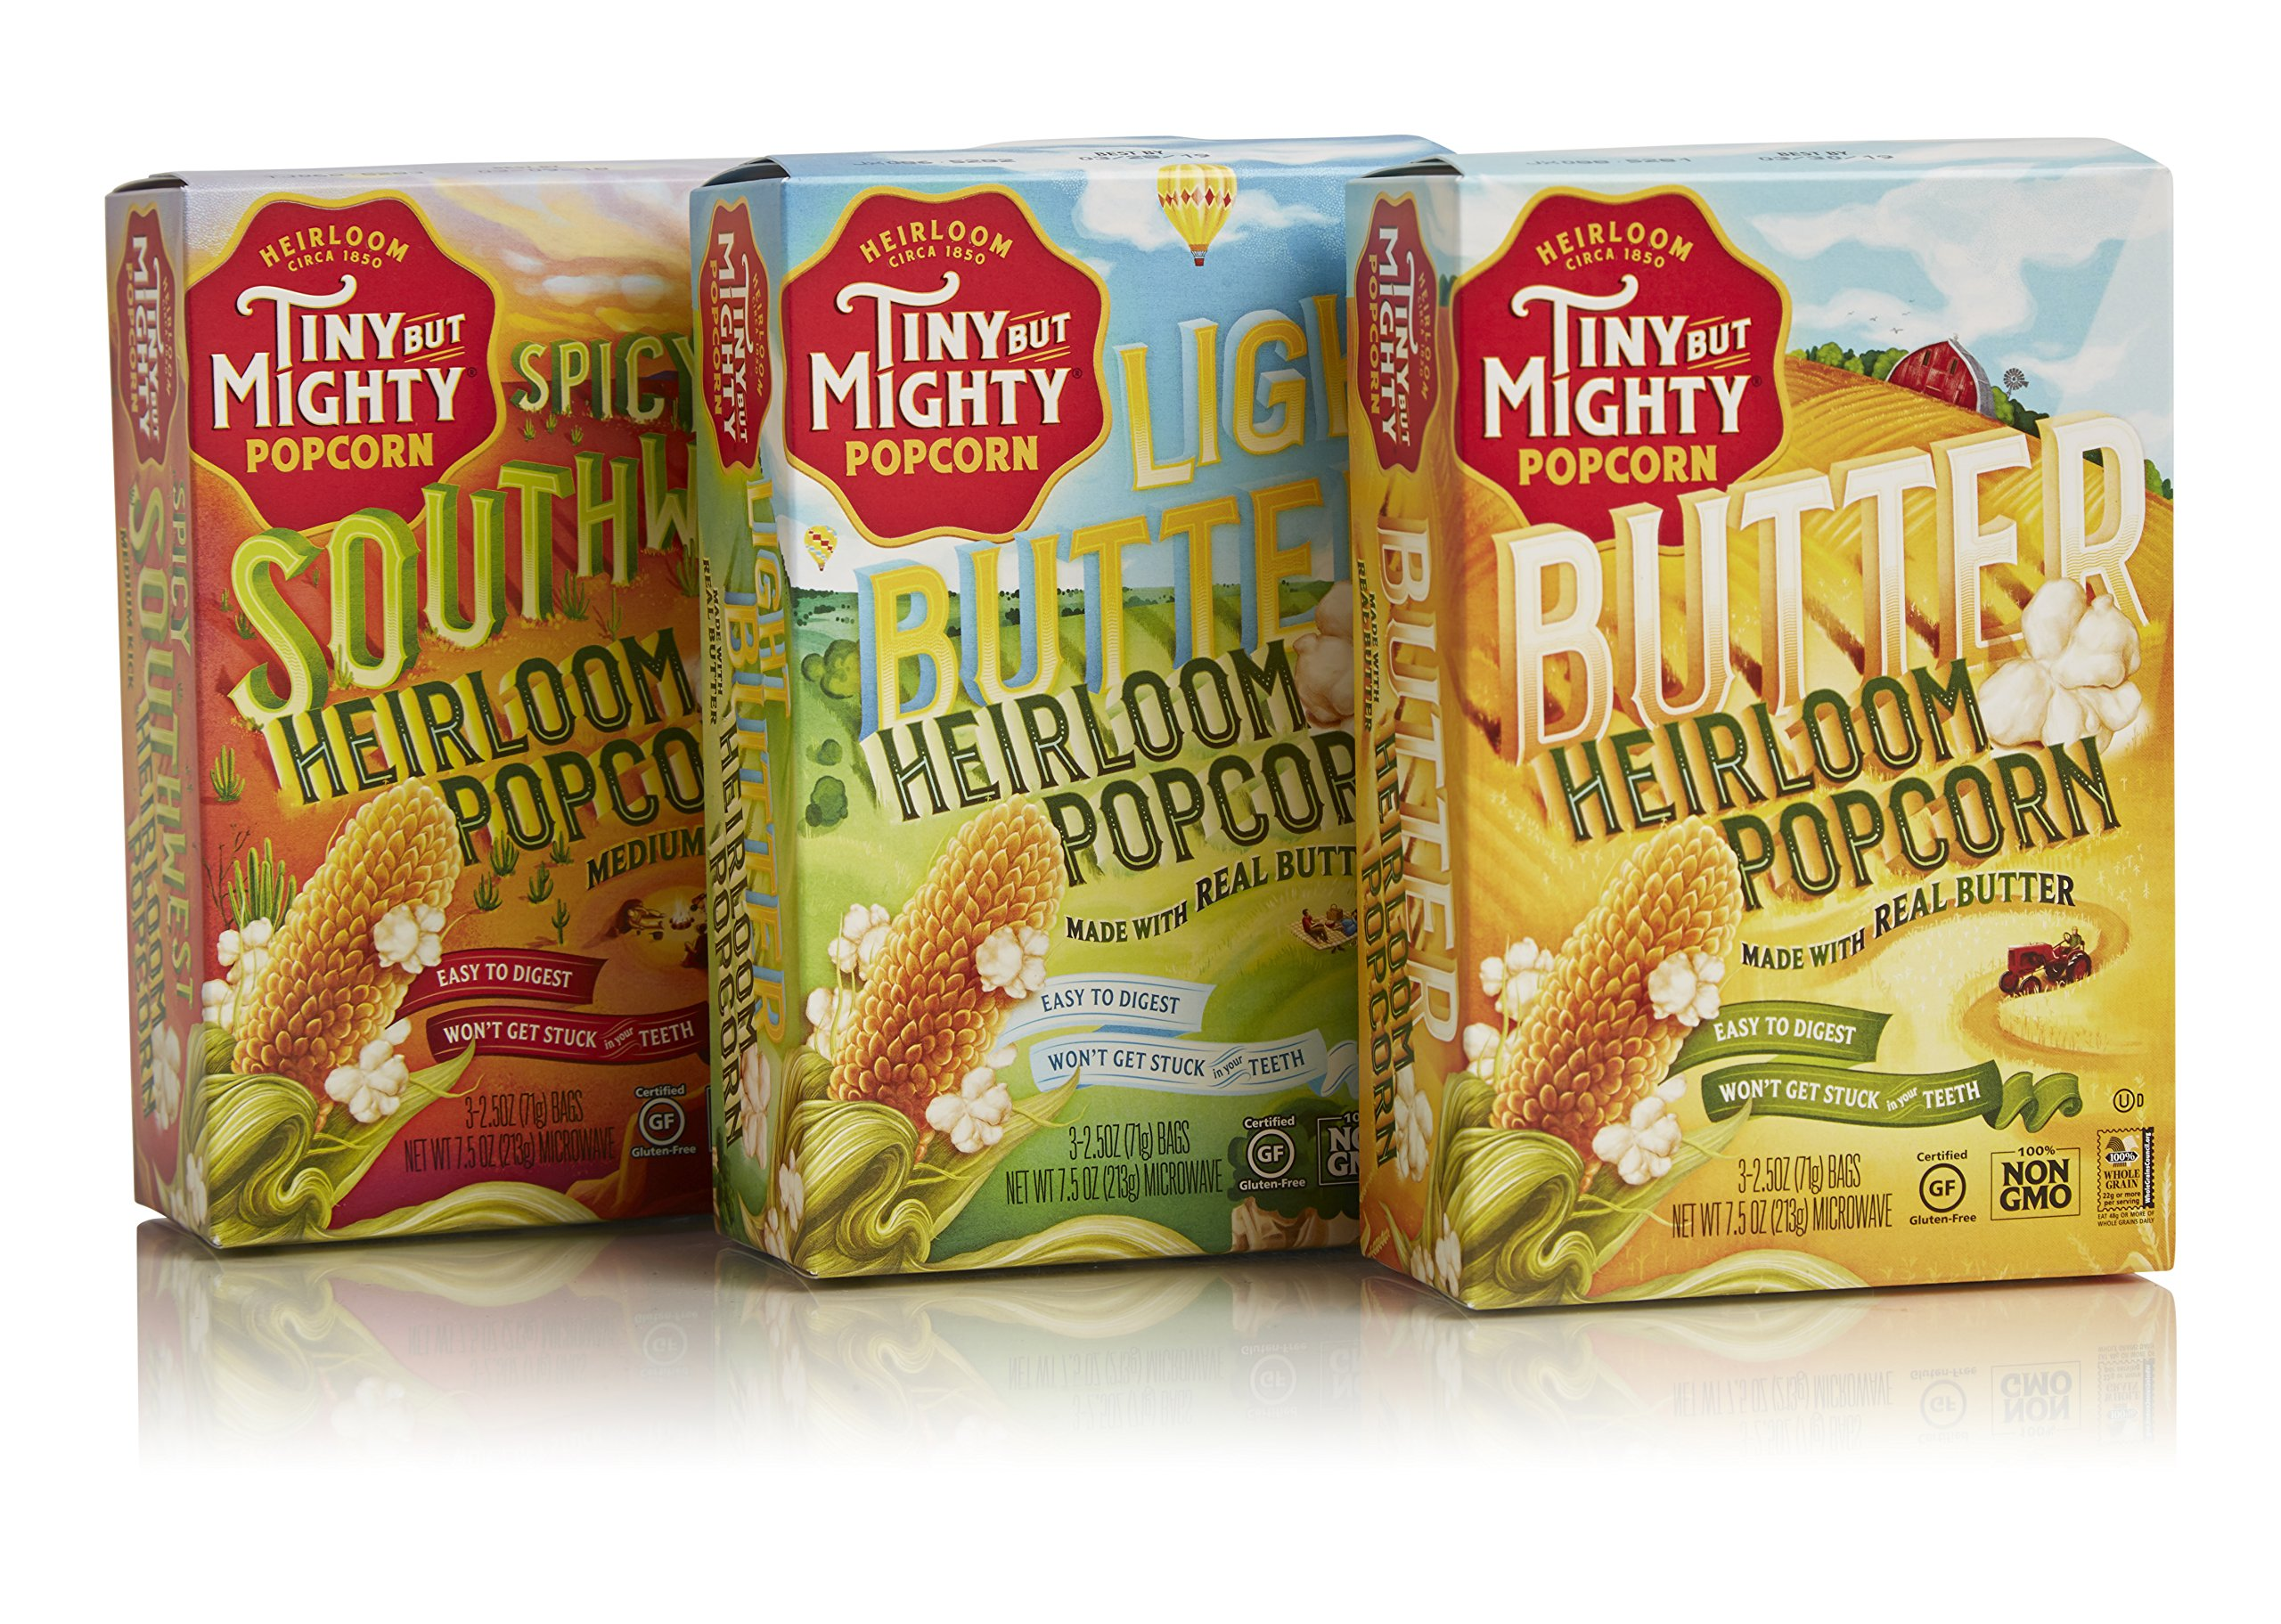 Tiny But Mighty Microwave Popcorn Variety Pack (1 Butter, 1 Light Butter, 1 Spicy Southwest)